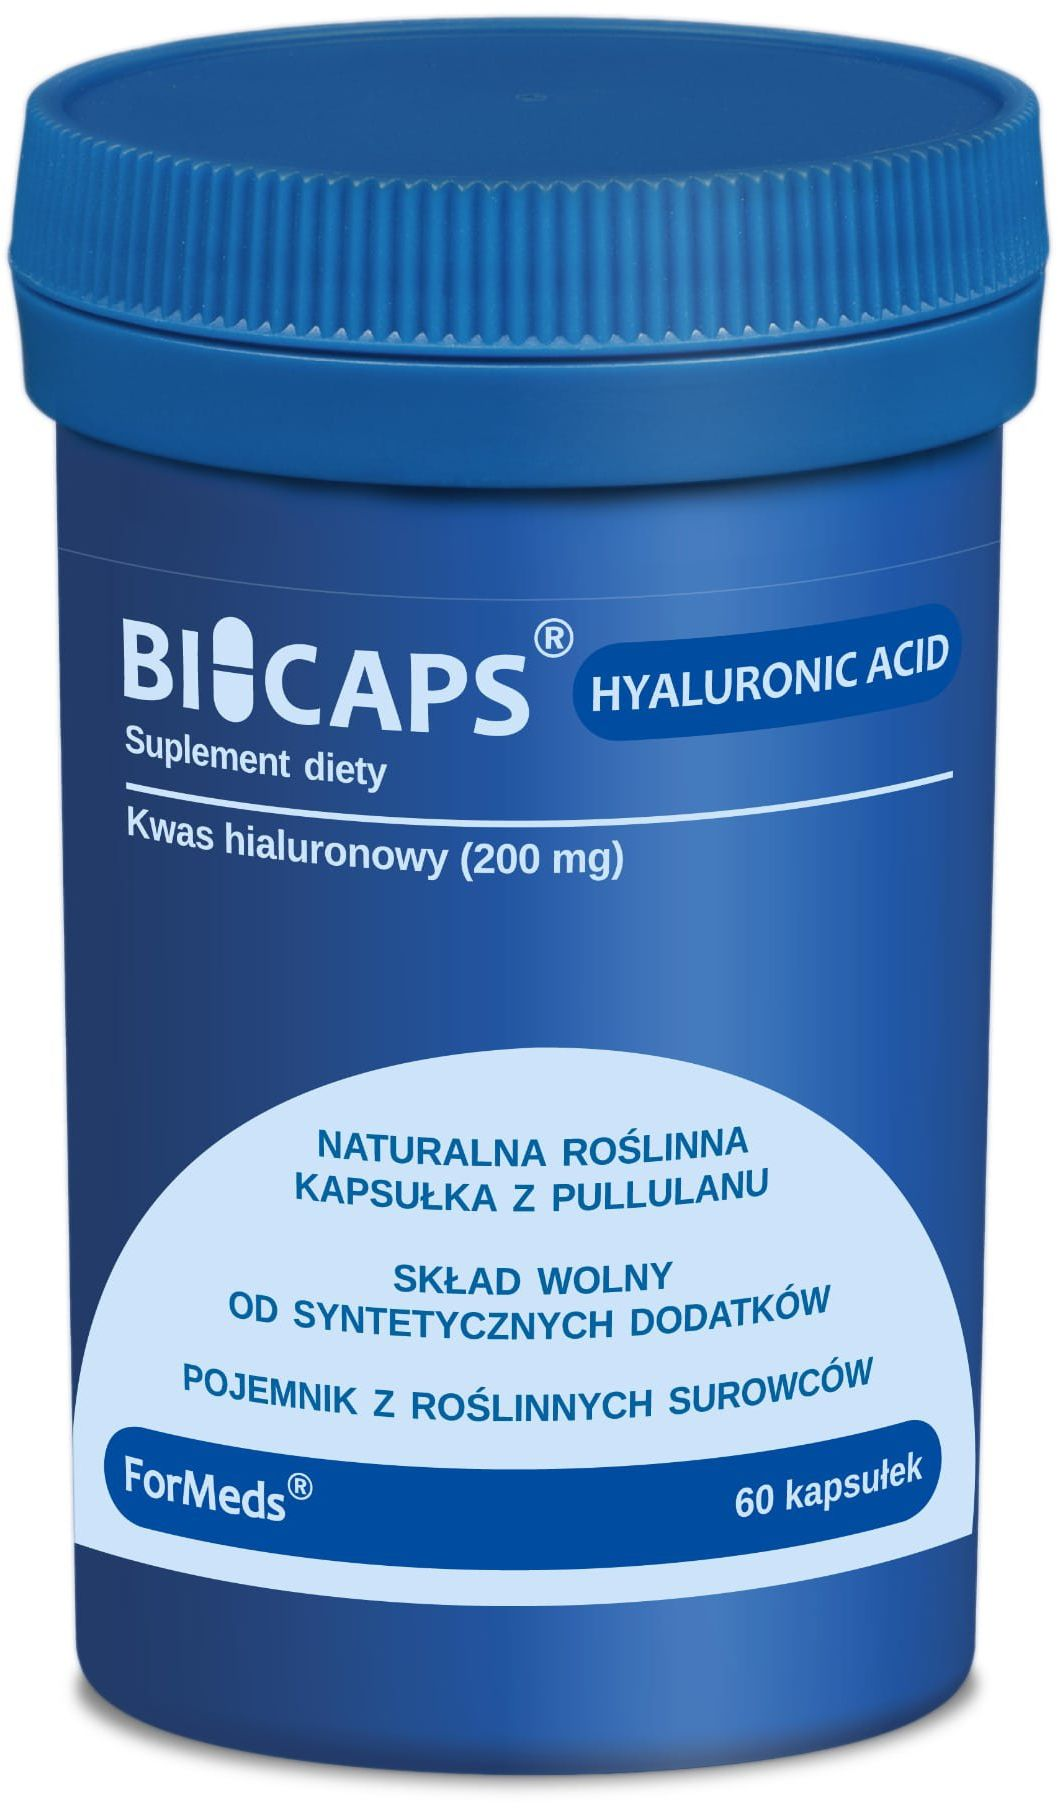 BICAPS Hyaluronic Acid Kwas Hialuronowy 200 mg (60 kaps) ForMeds